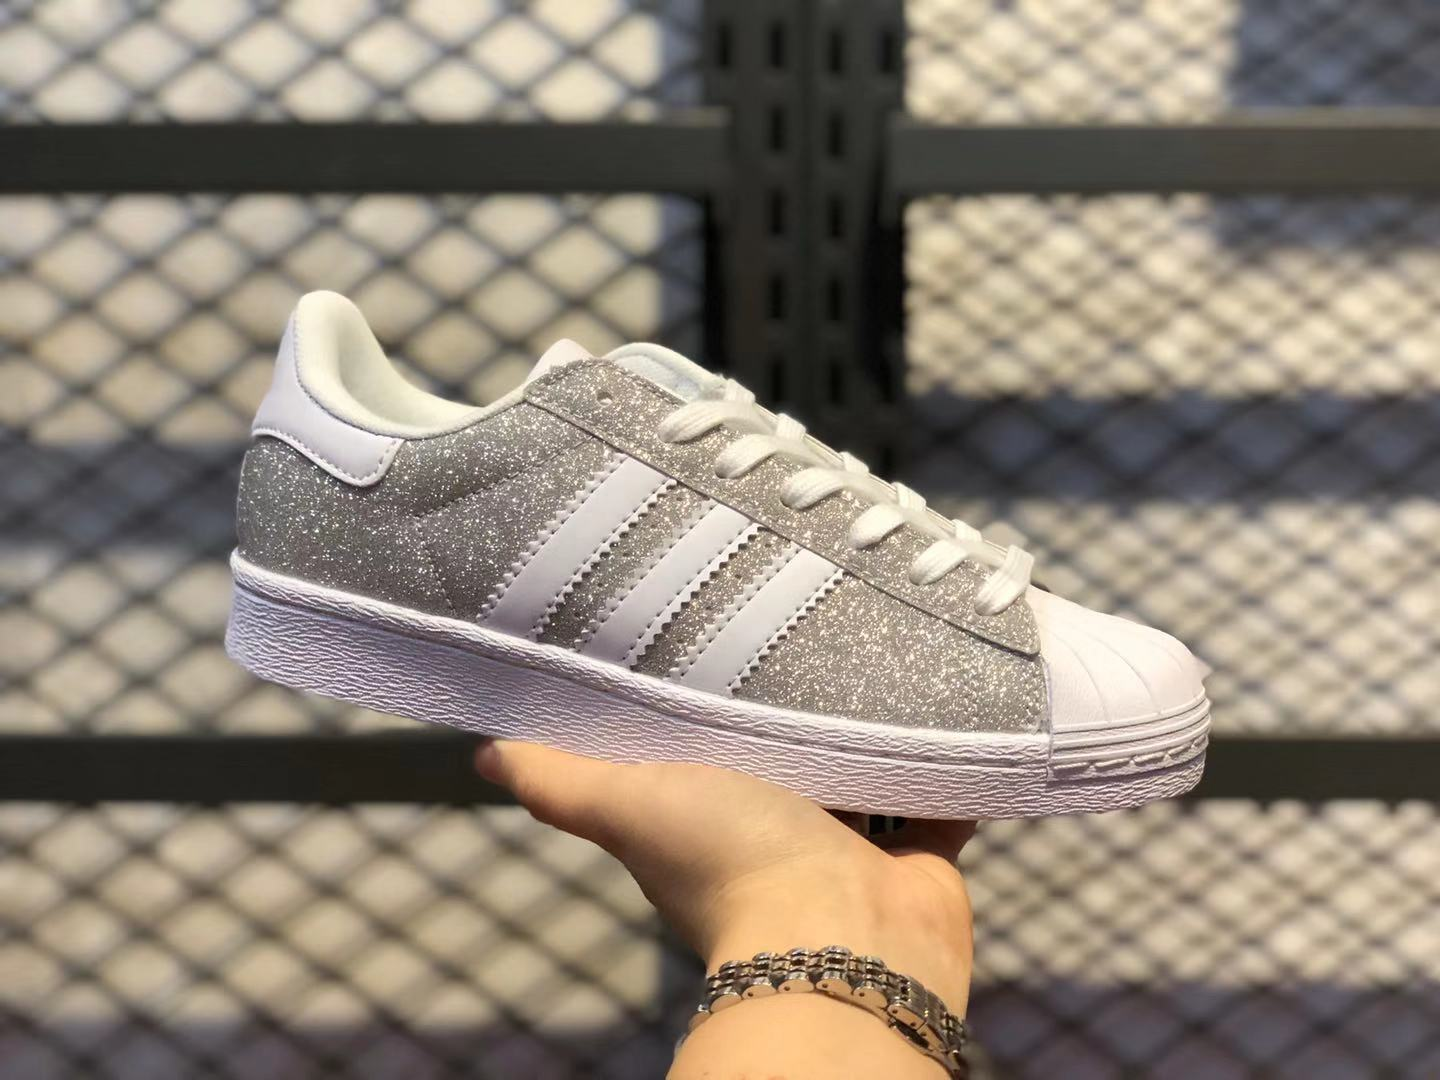 Adidas WMNS Originals Superstar Glitter Silver Fashion Casual Shoes S75125